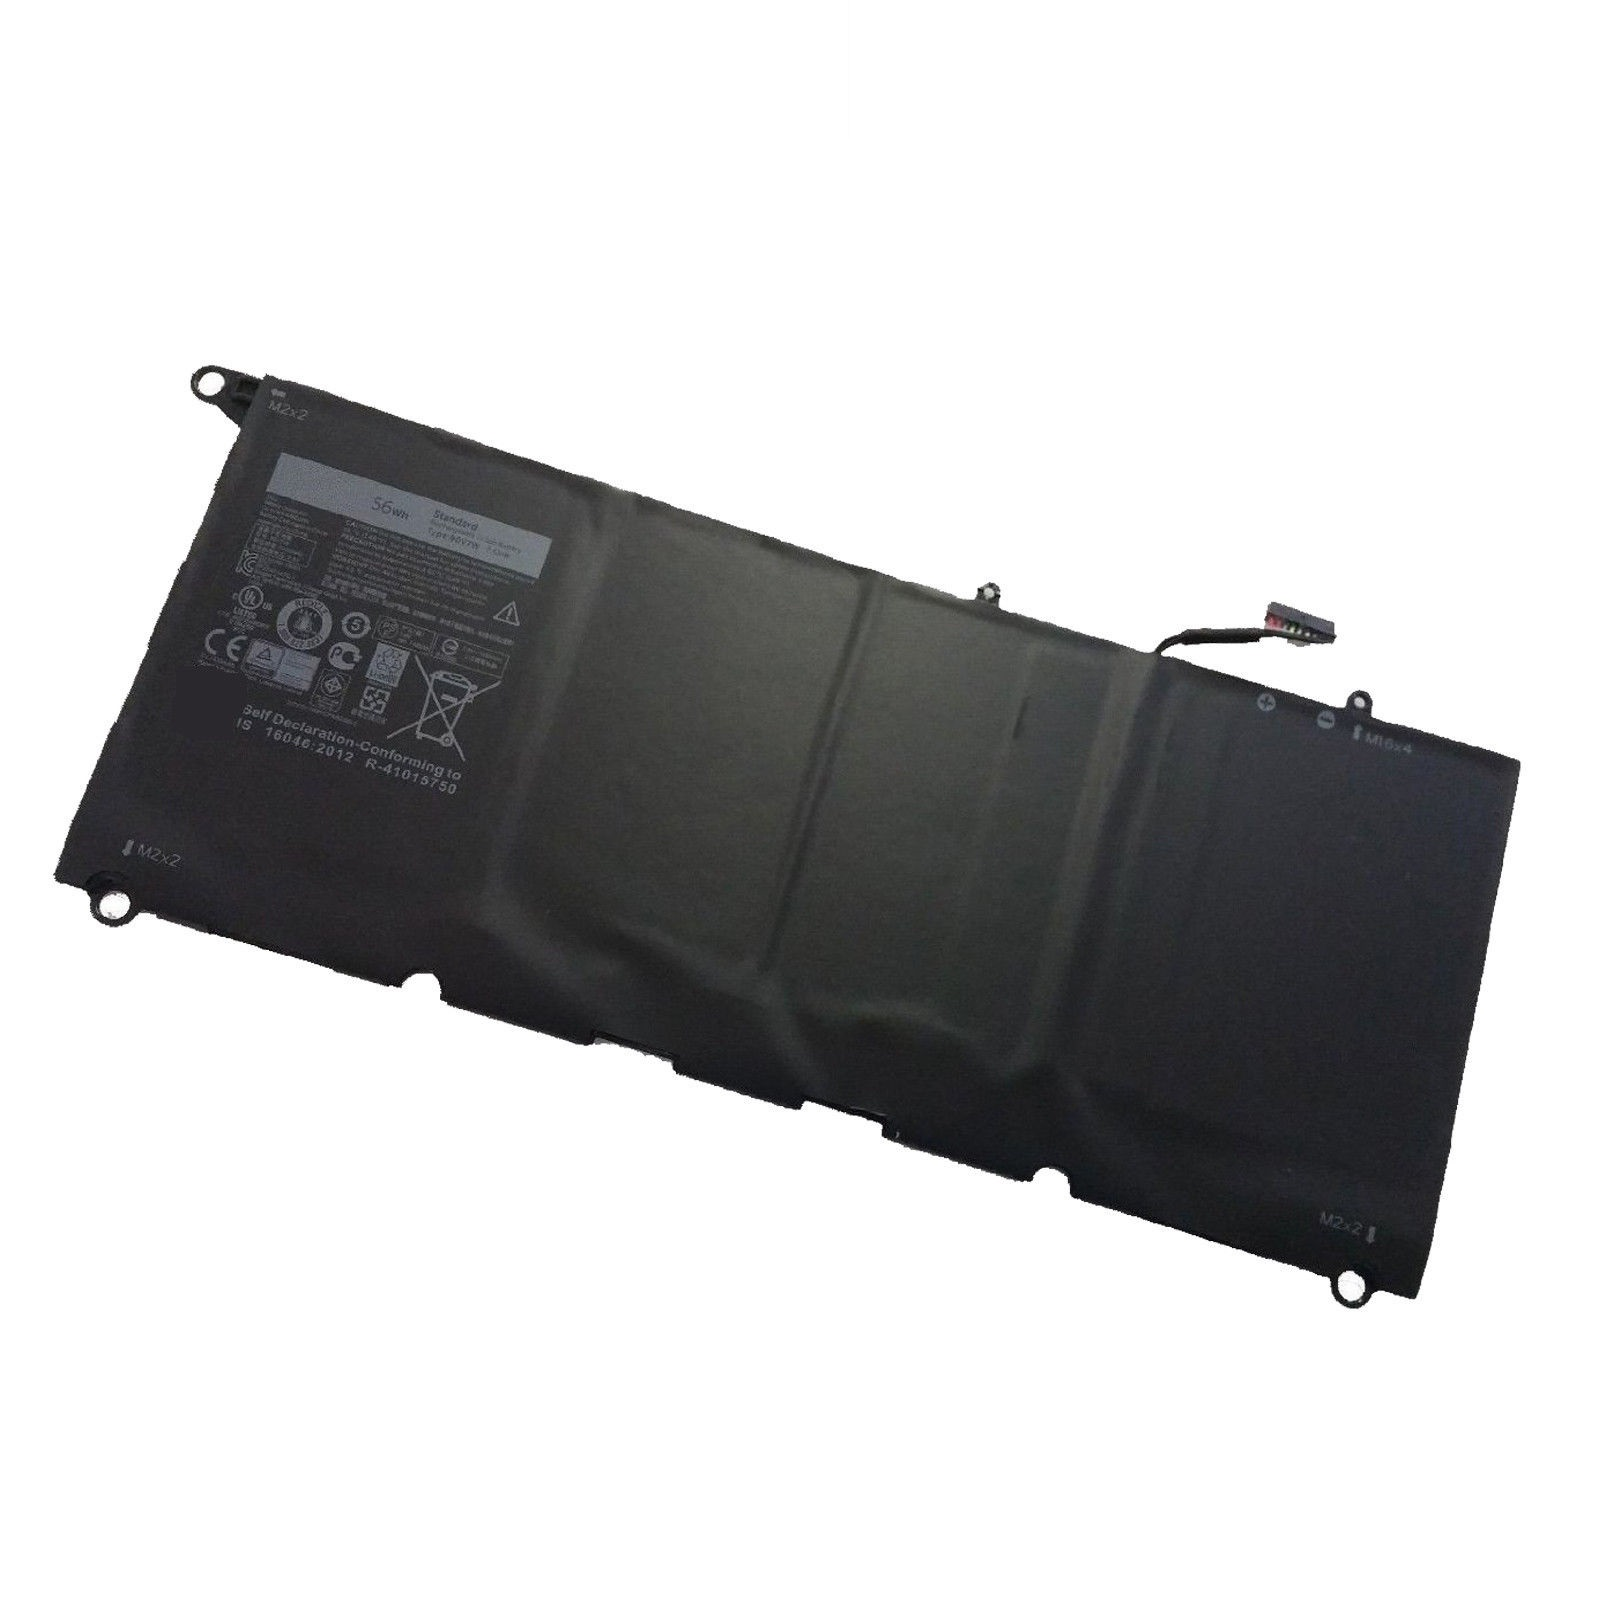 JD25G 90V7W Dell XPS13D-9343-1708 Dell XPS 13 9343 7.6V 56Wh batteria compatibile